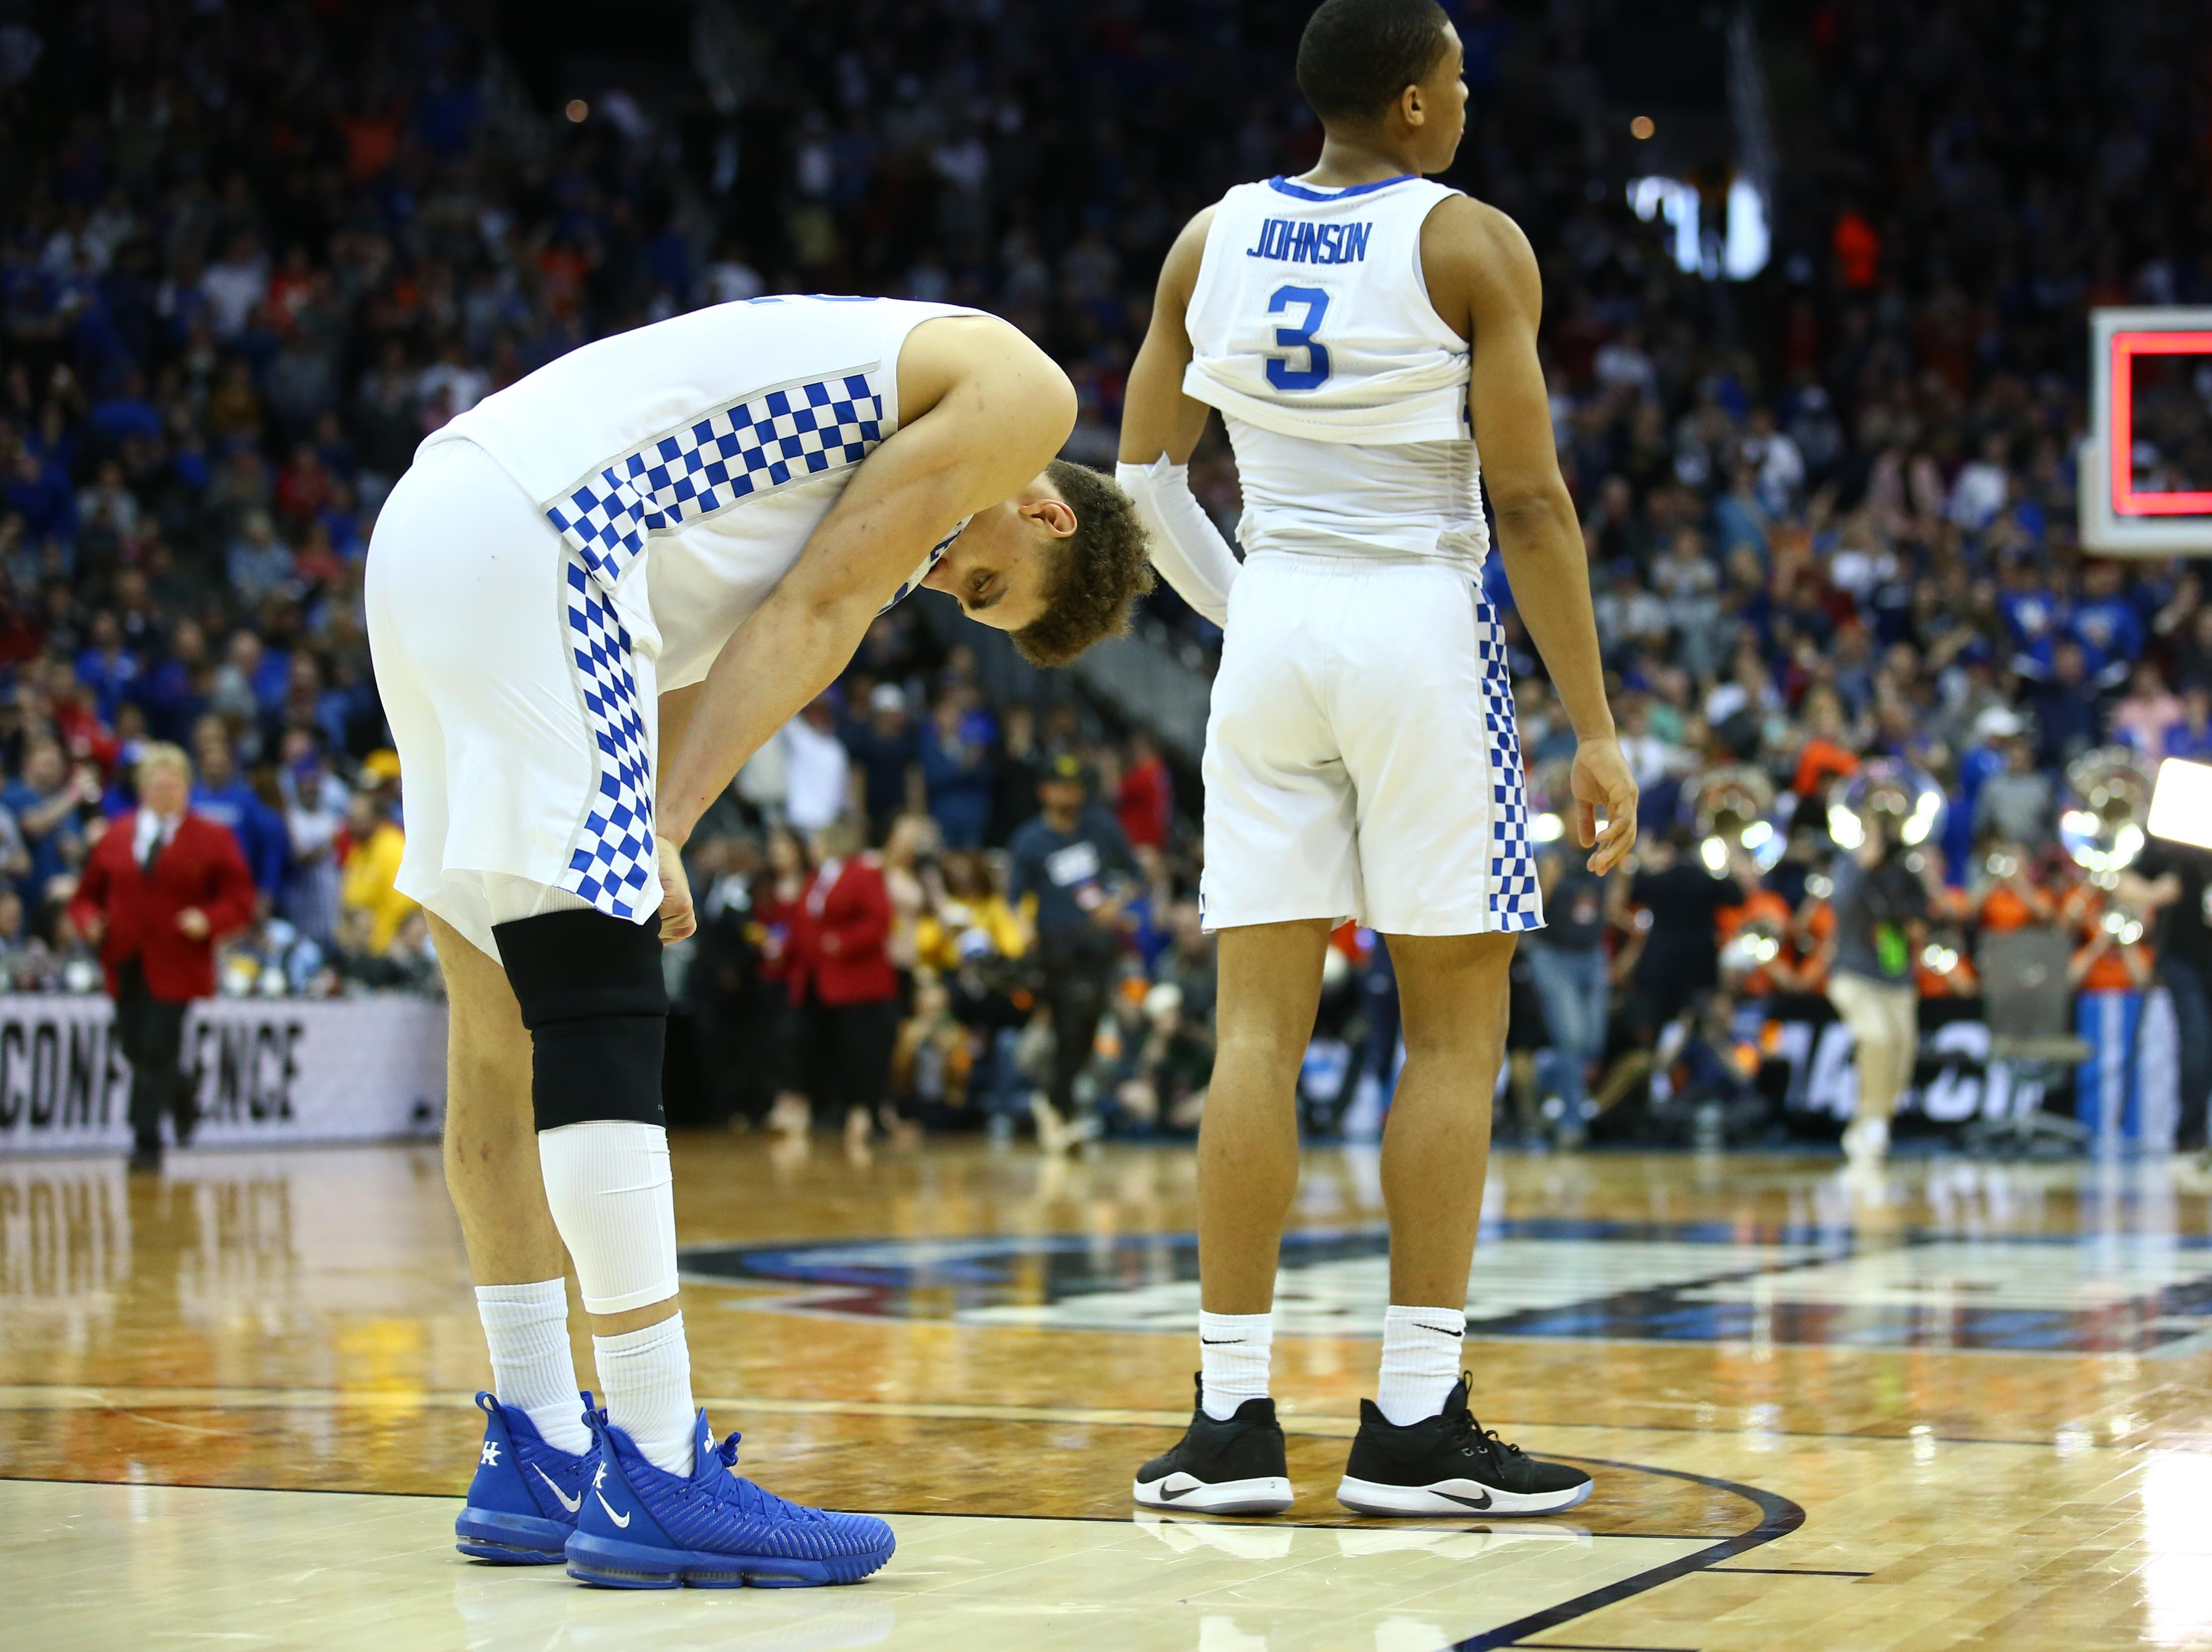 Elite Eight: No. 2 Kentucky loses to No. 5 Auburn, 77-71 in overtime.